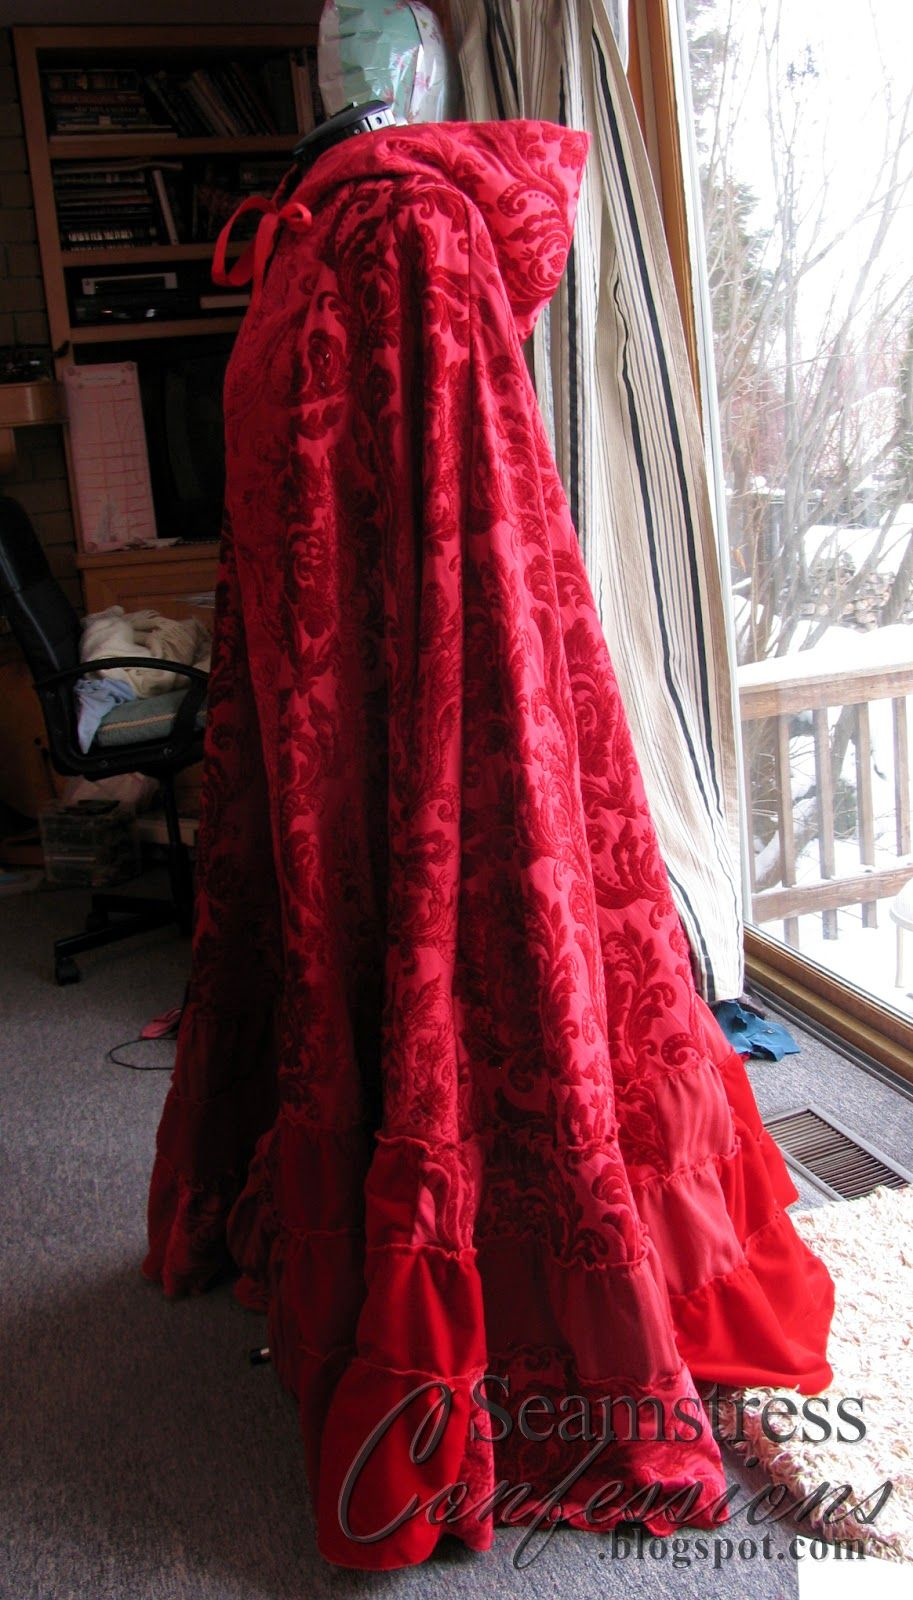 Confessions of a Seamstress: Ruby/Red's Cloak from Once